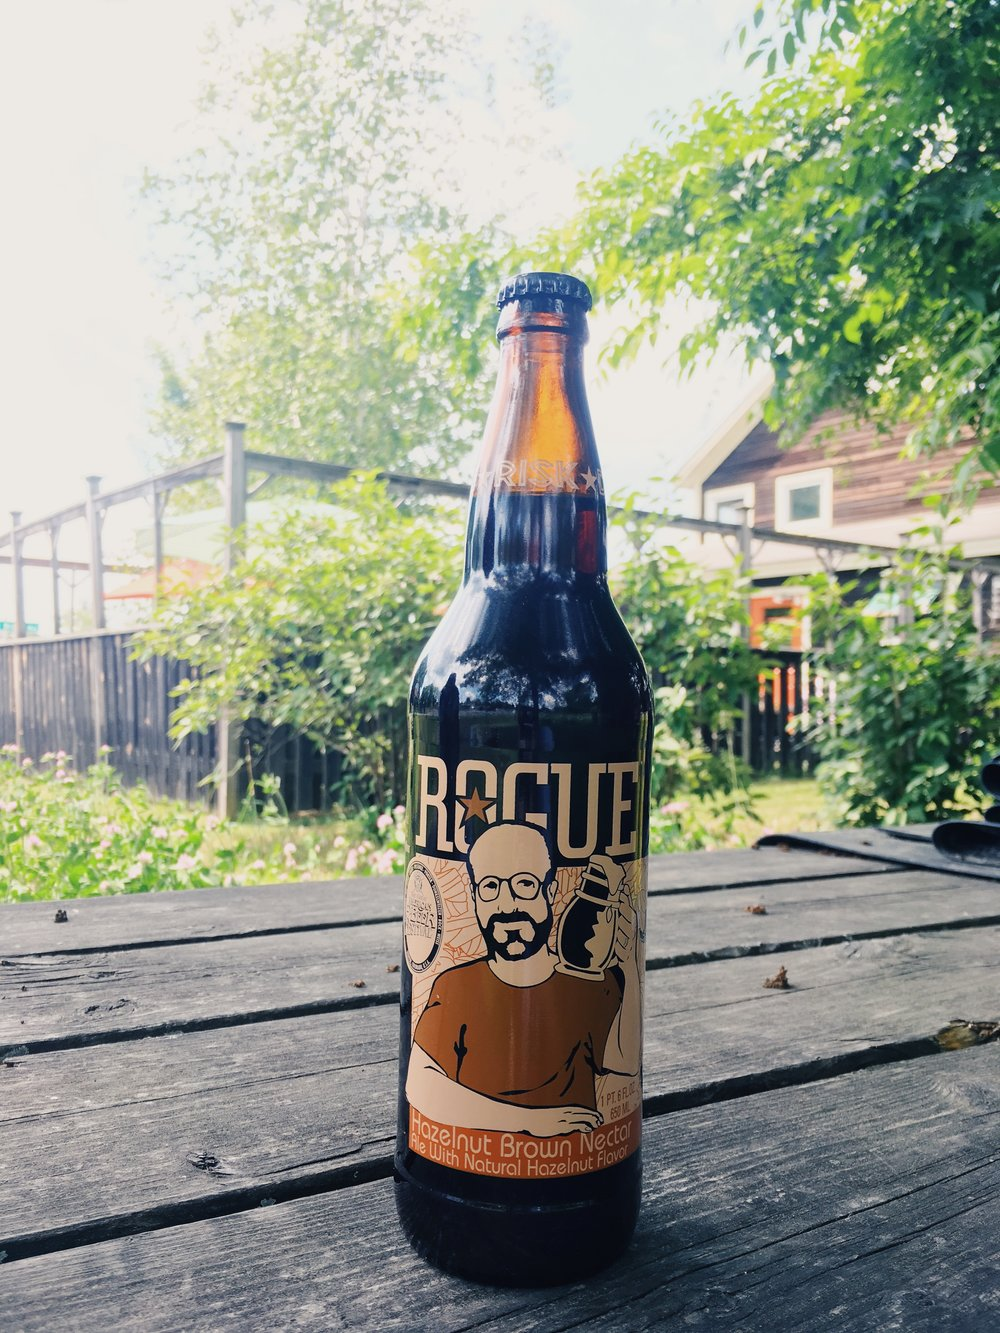 For the beer lover - This delicious favorite Rogue Hazelnut Ale features 'hazelnut, spring water and faint citrus notes up front; with light roast coffee and acorn notes on the finish' in a combination that's sure to comfort and inspire!